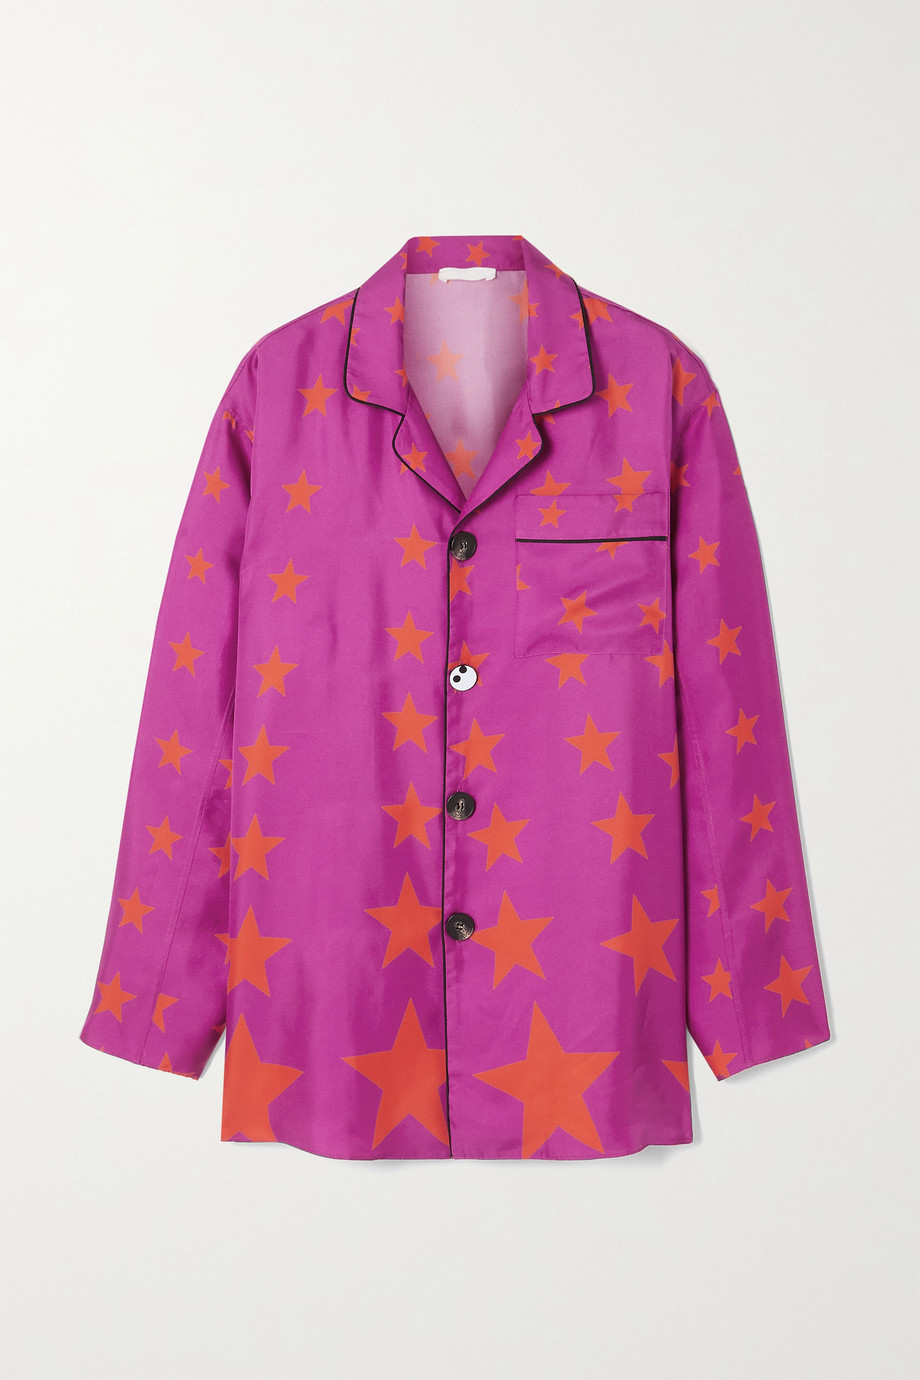 AZ Factory Pijama You're A Star silk-twill shirt